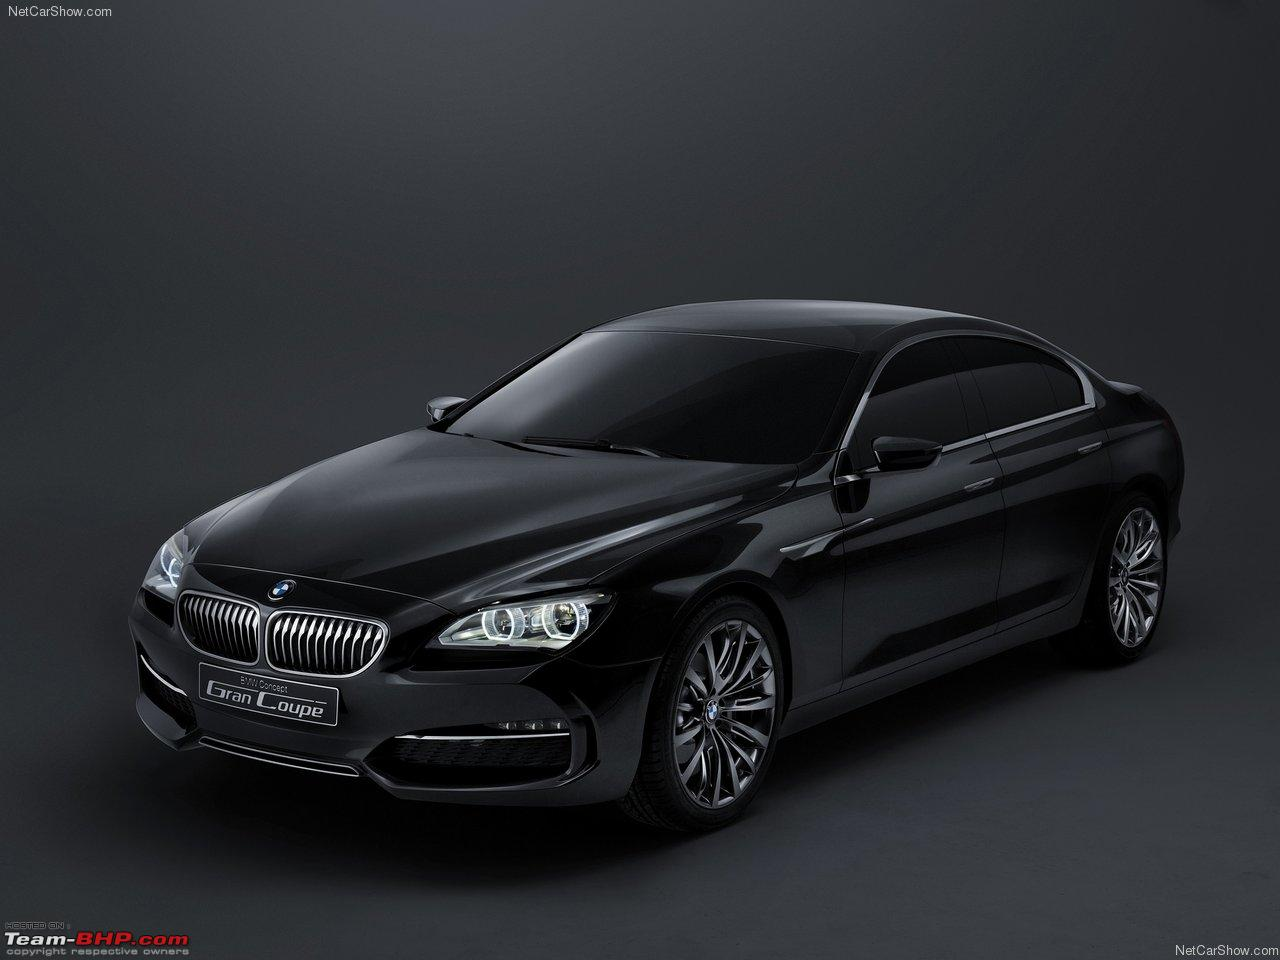 Bmw grancoupe 4 door 6 series edit now officially unveiled team bhp